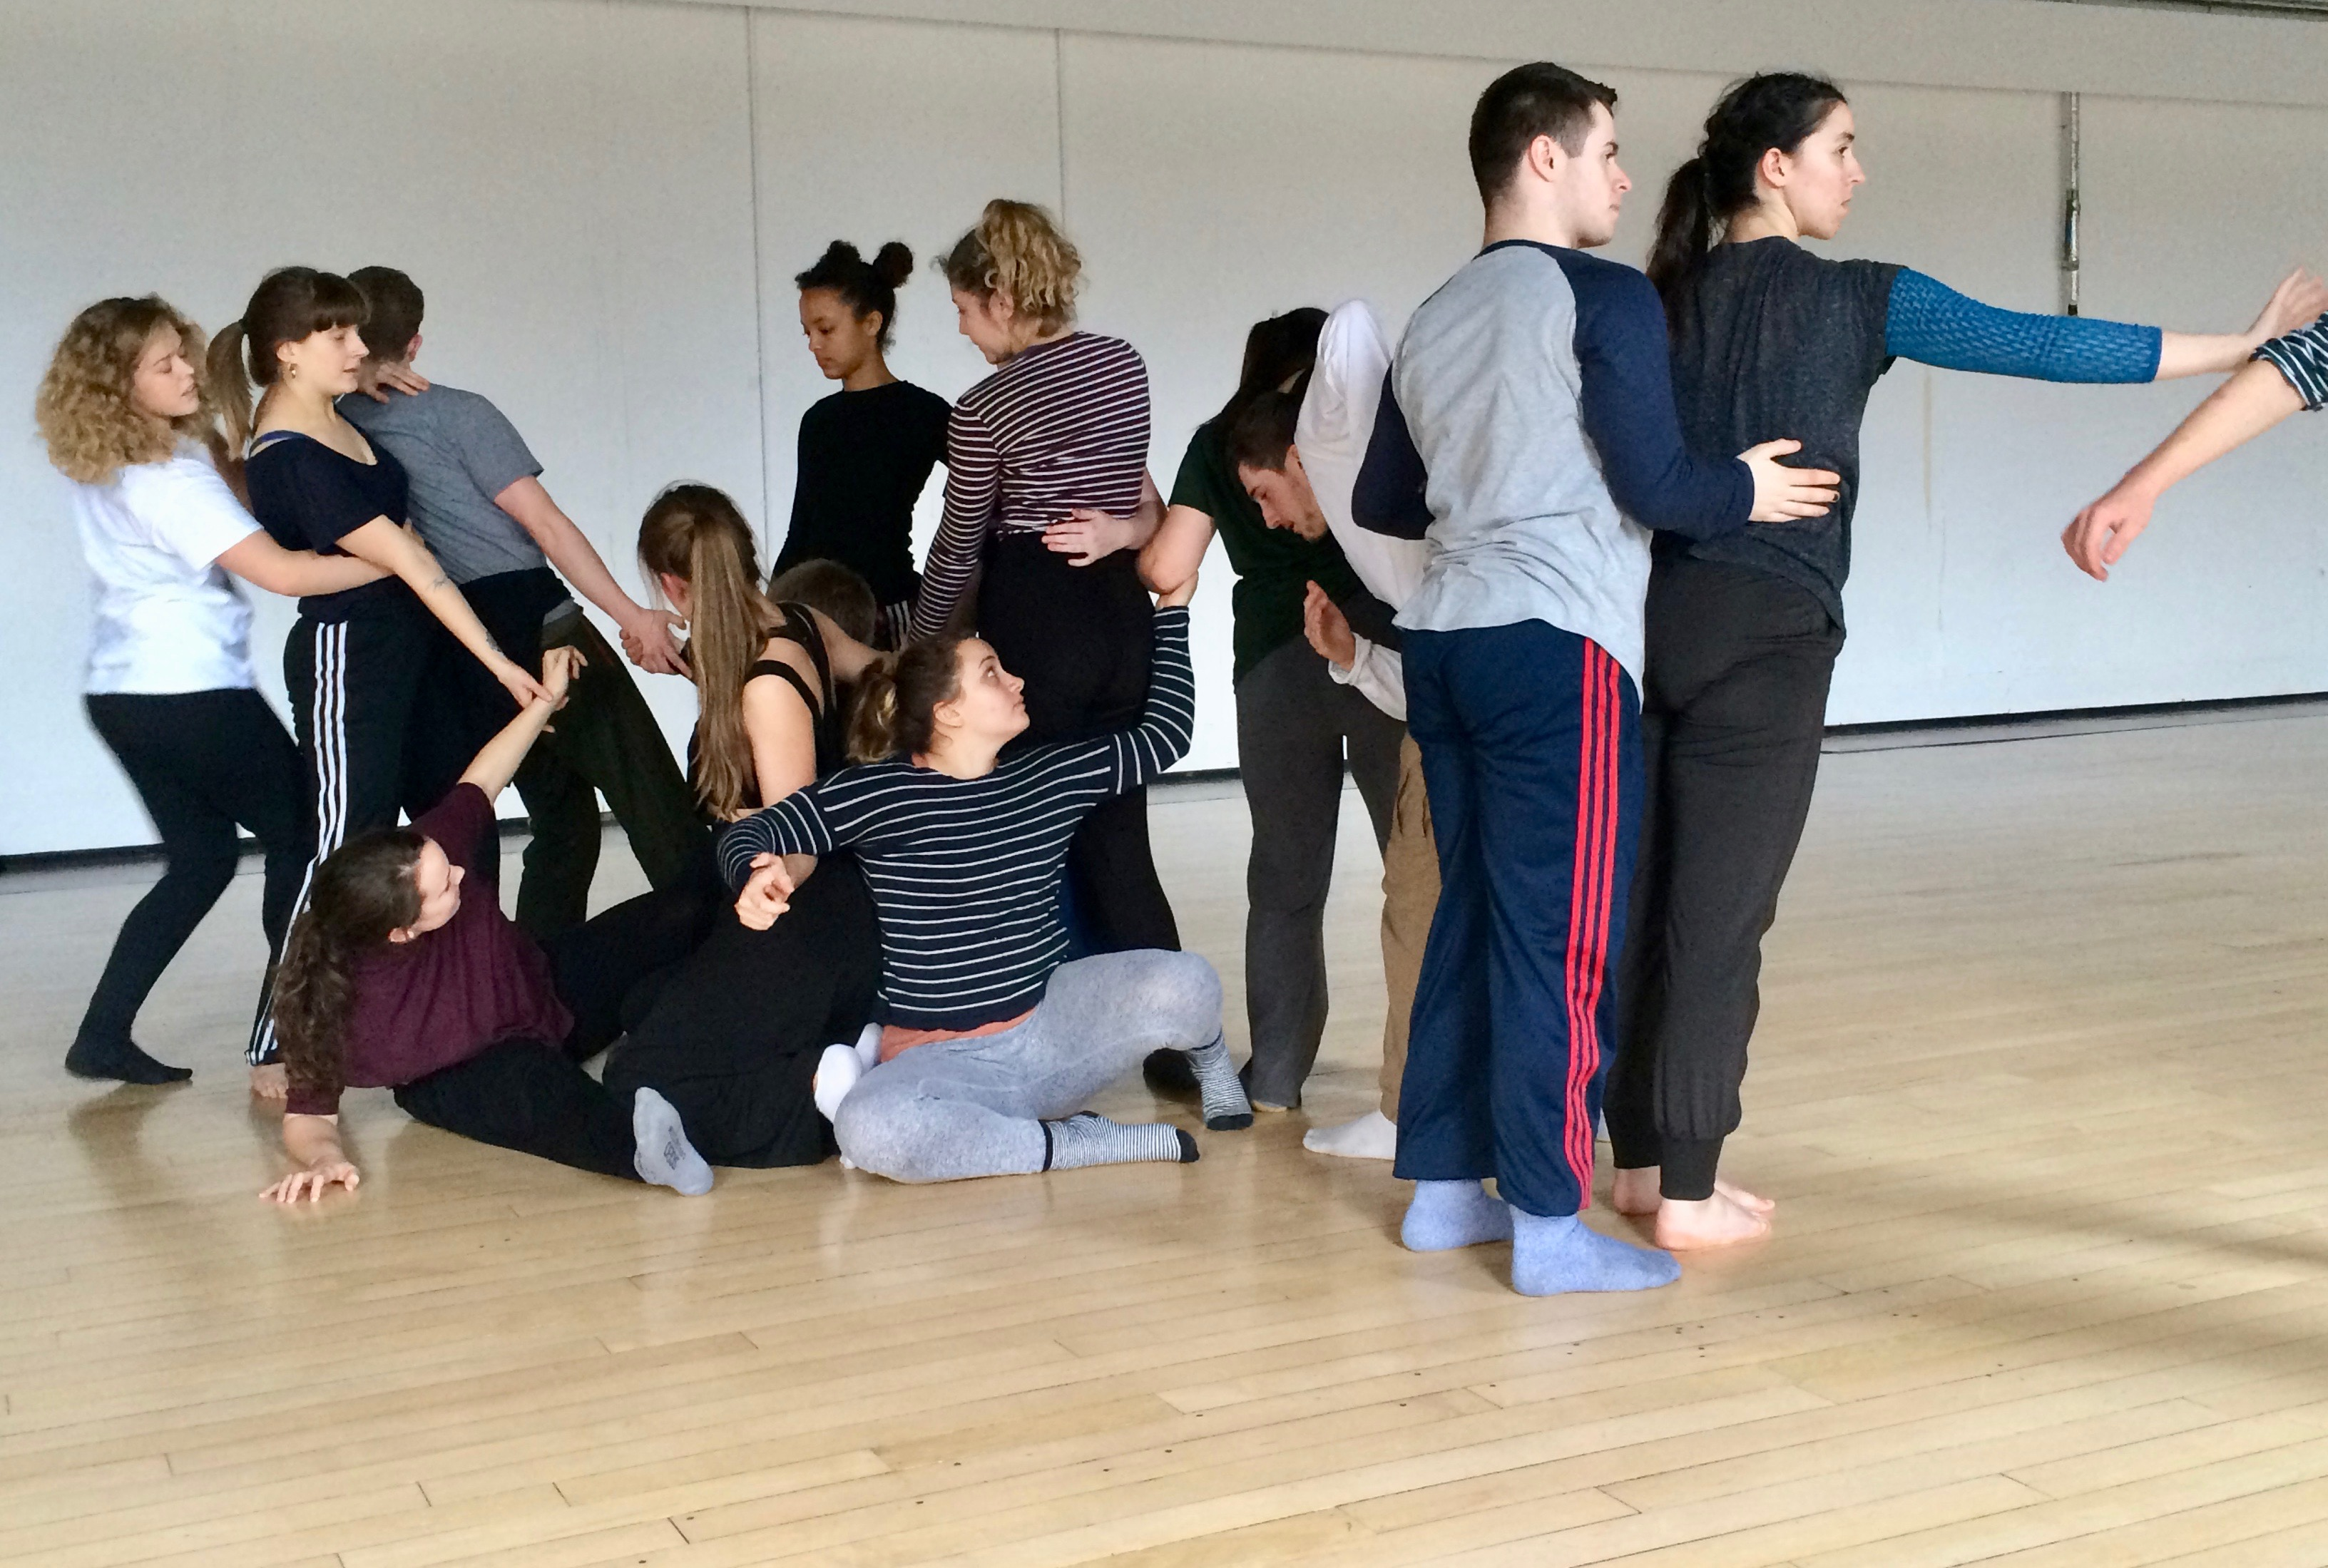 Young Choreographers South West - Dance in Devon - A charity